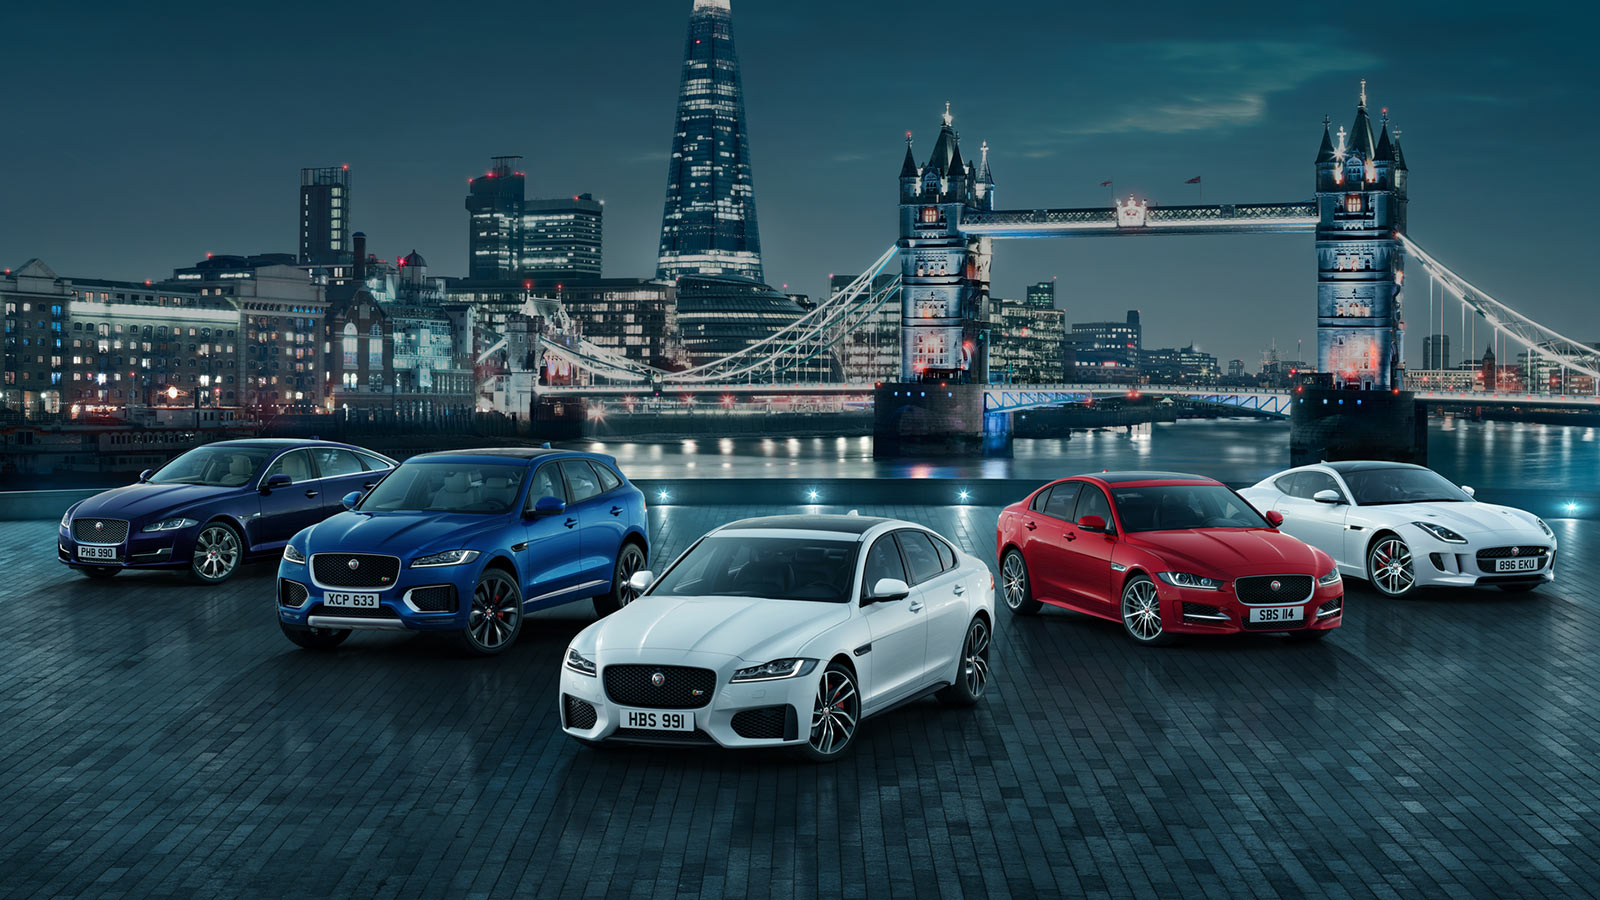 Jaguar range on display in London.